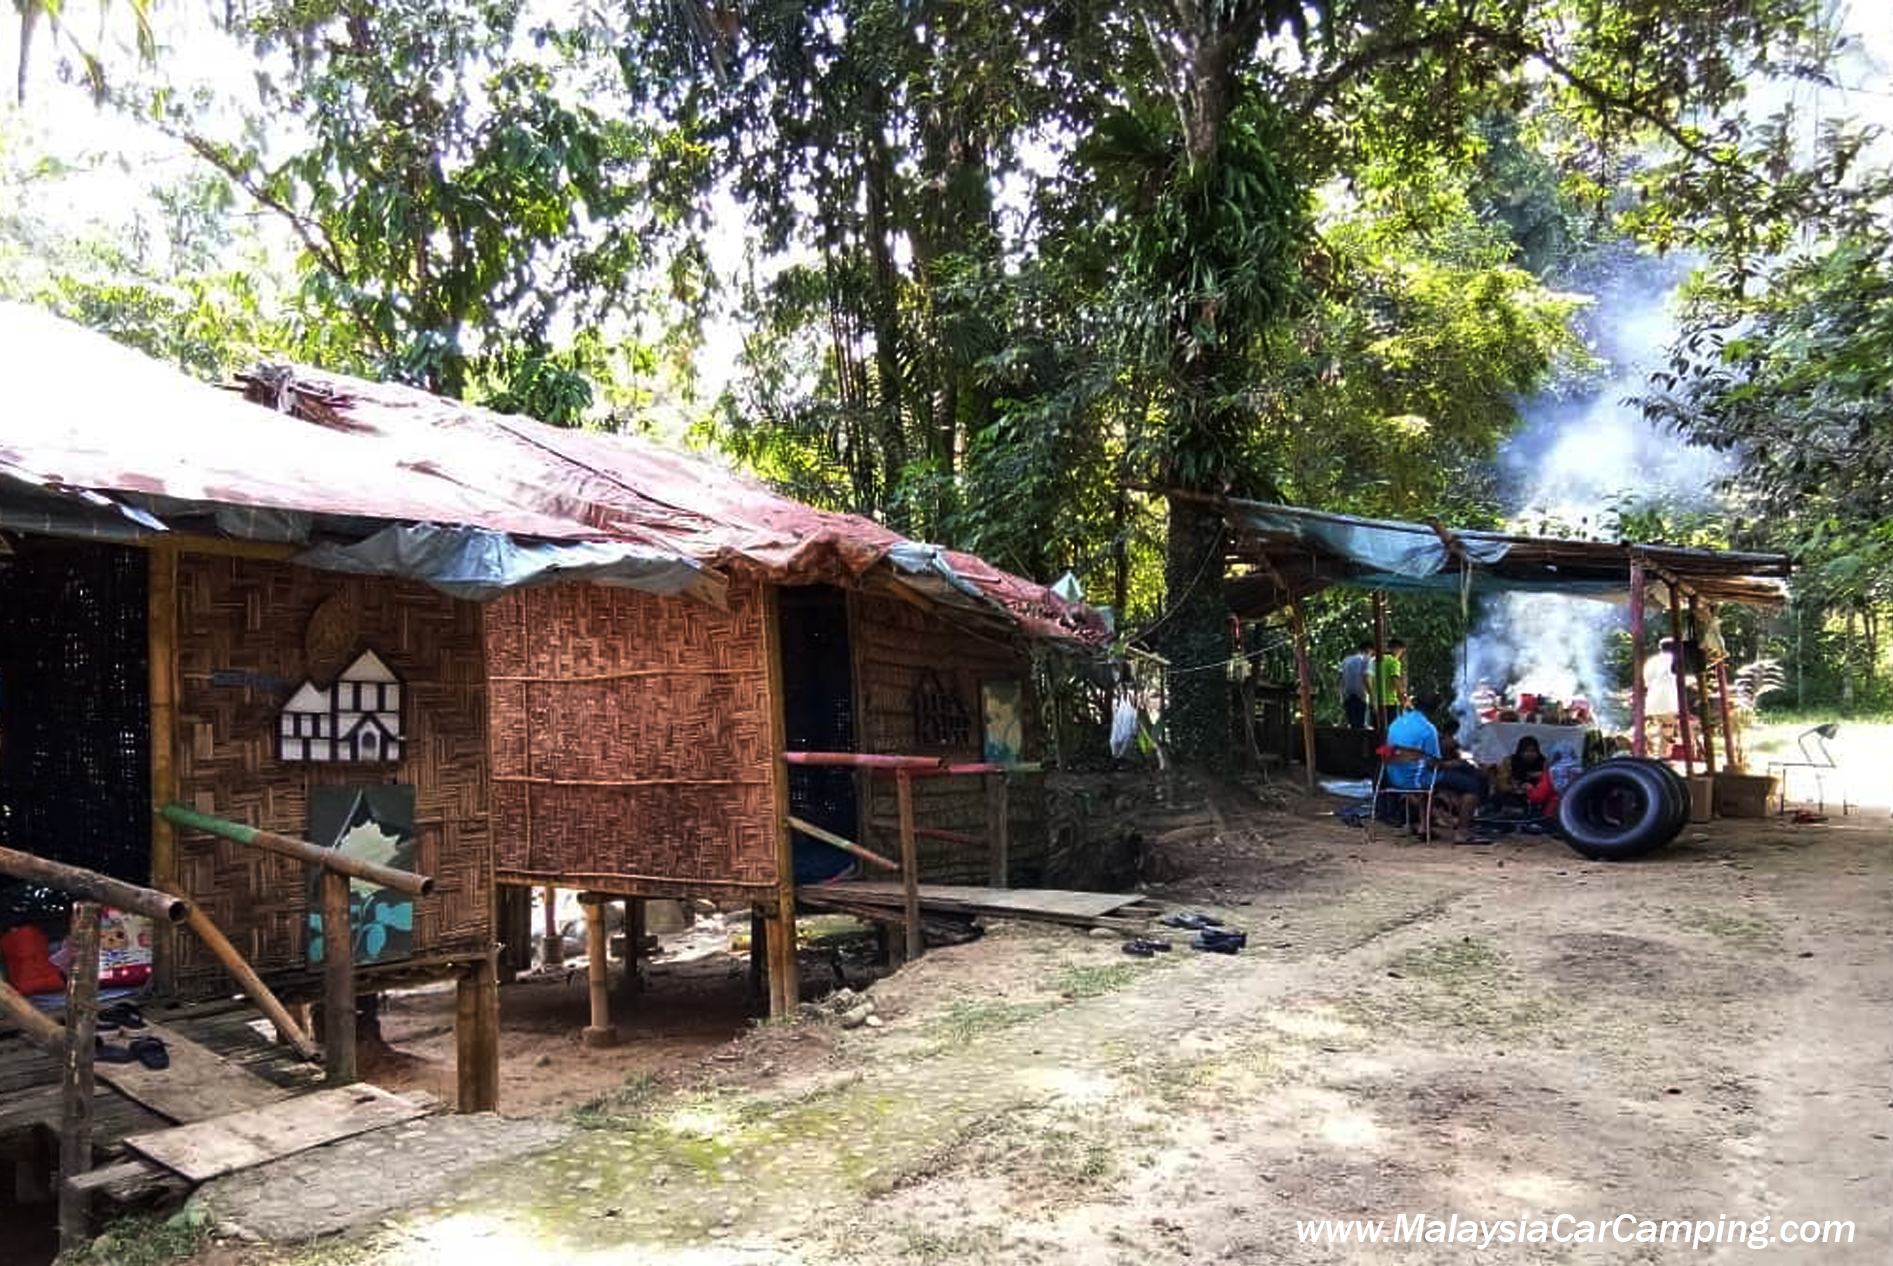 sungai_bil_cool_spring_ulu_slim_perak_outdoor_activity_car_camping_site_malaysia_car_camping-7